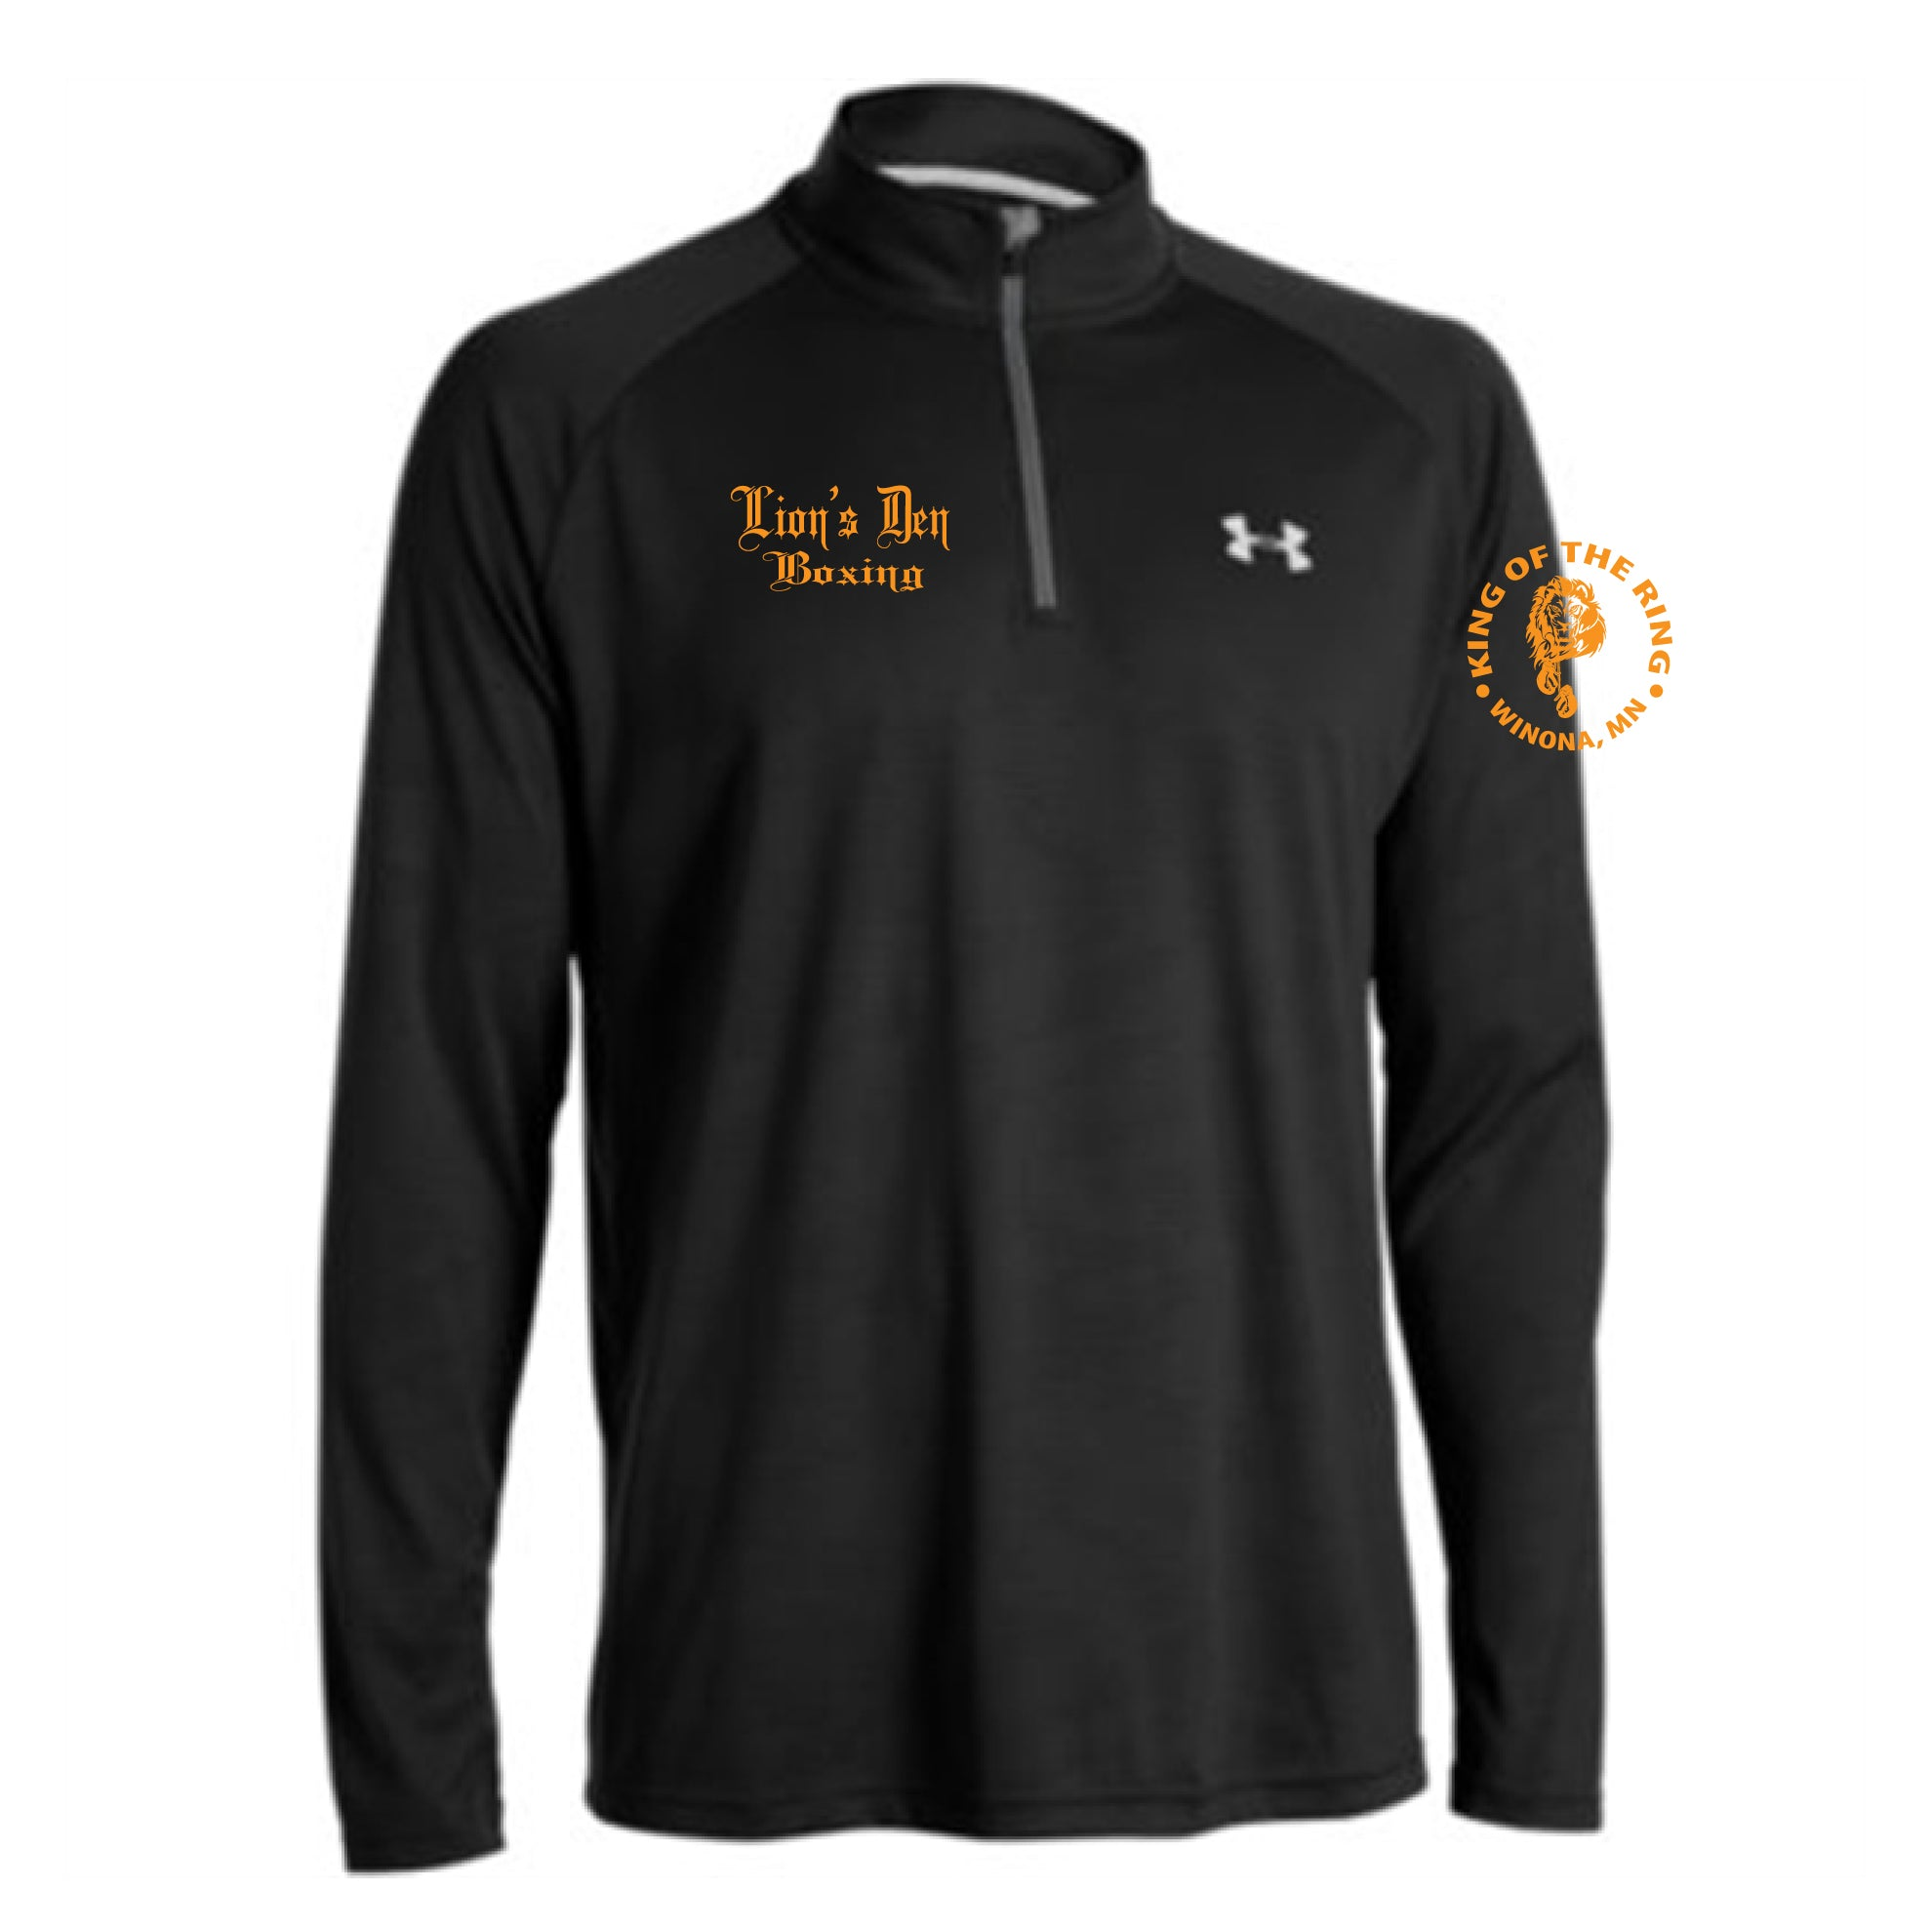 Lion's Den Boxing - UA Tech™ ¼ Zip Men's Long Sleeve Shirt - Embroidered